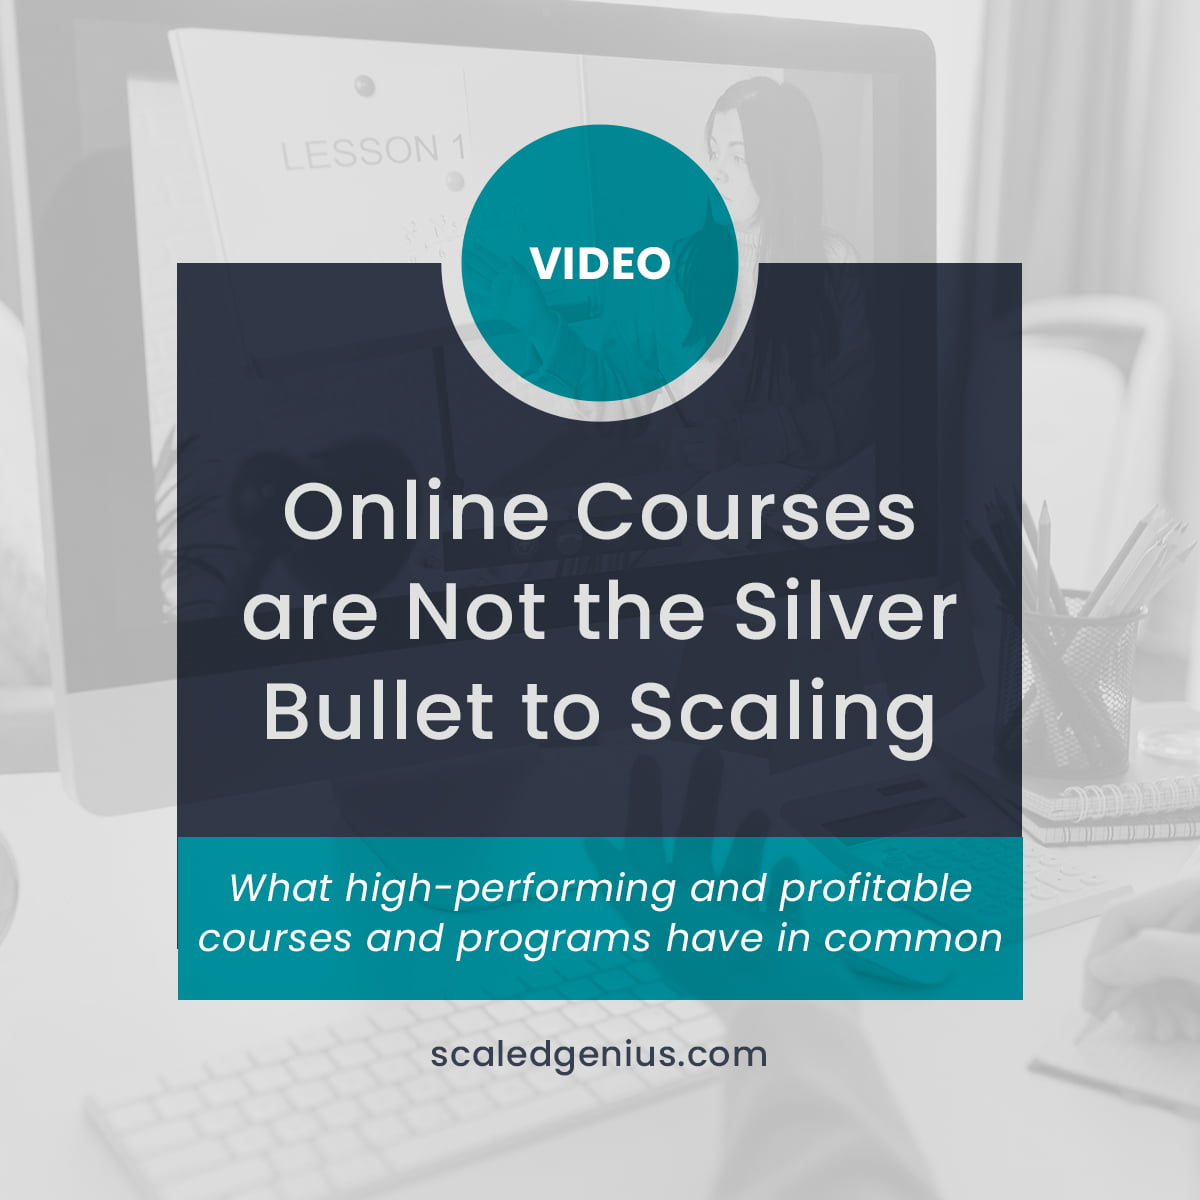 [Video] Online Courses Are Not the Silver Bullet to Scaling